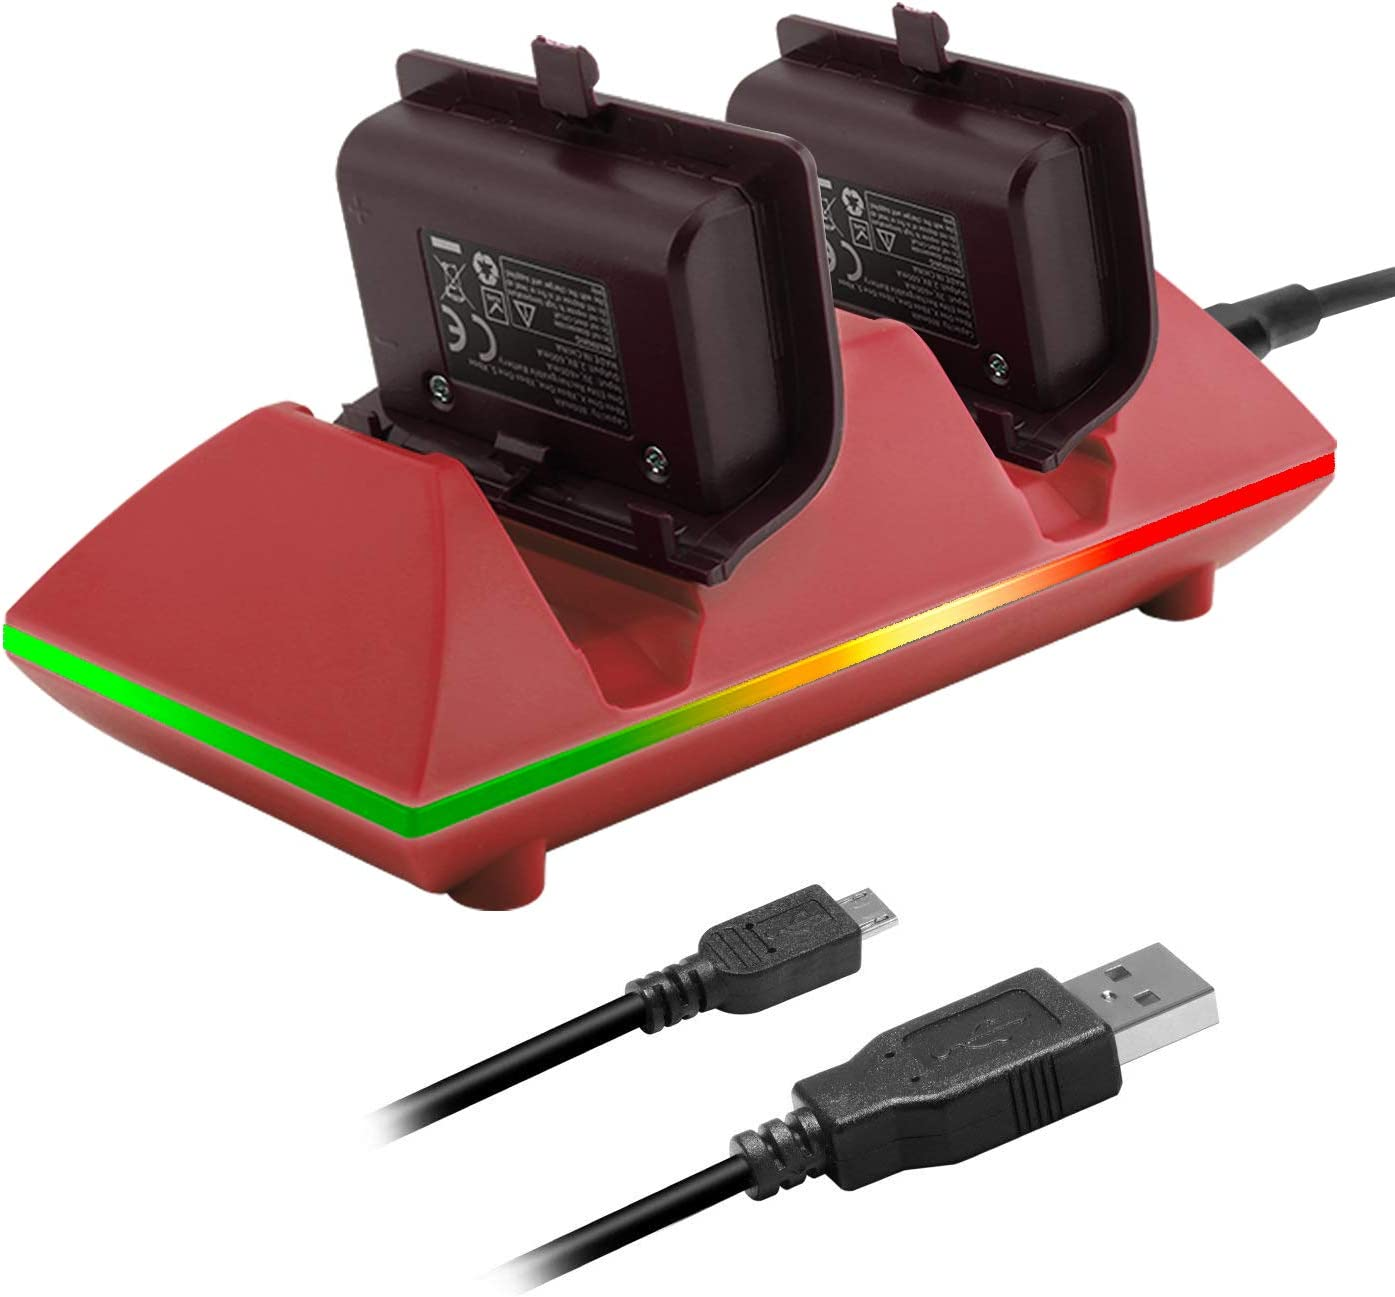 MoKo Xbox One/One S Controller Charger Dock Kit 2 x 800mAh Rechargeable Battery Packs Charging Station for Xbox One One S One X Xbox One Elite Controllers - Red